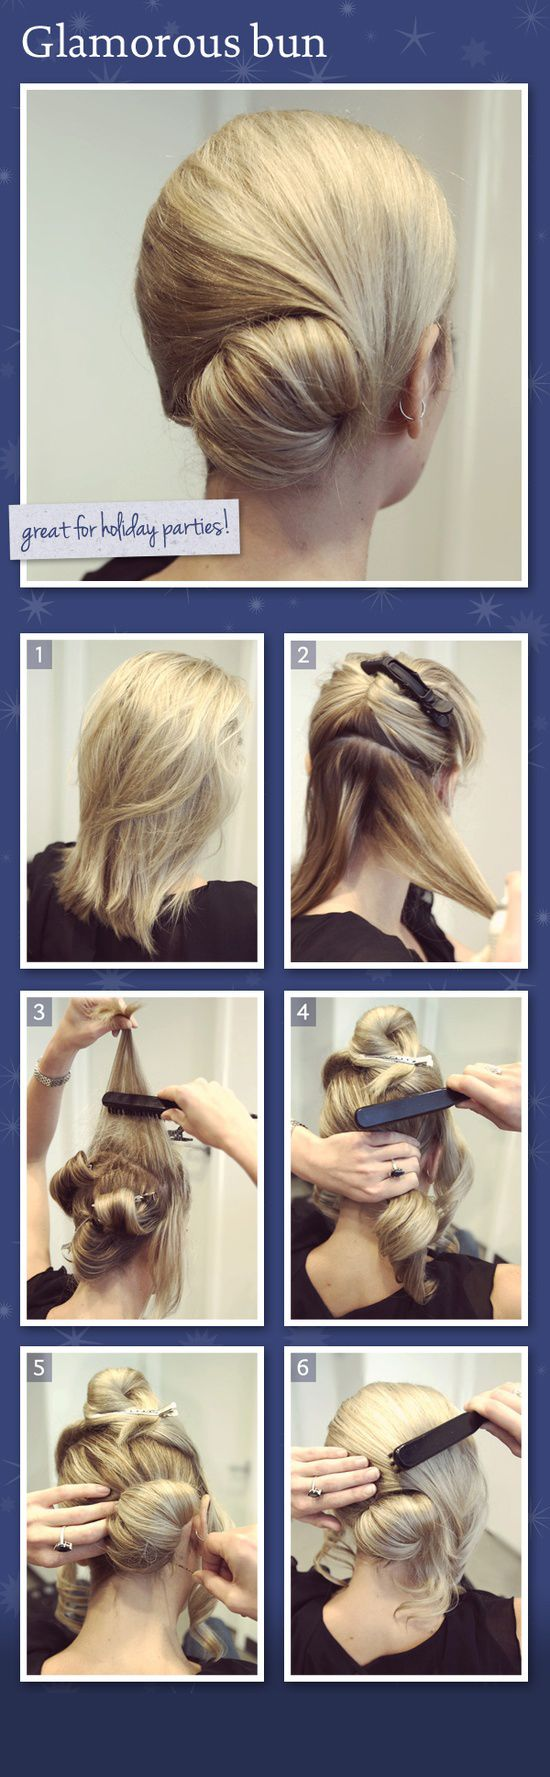 Beautiful side-swept bun - perfect for a summer wedding where you want your hair up and off your neck